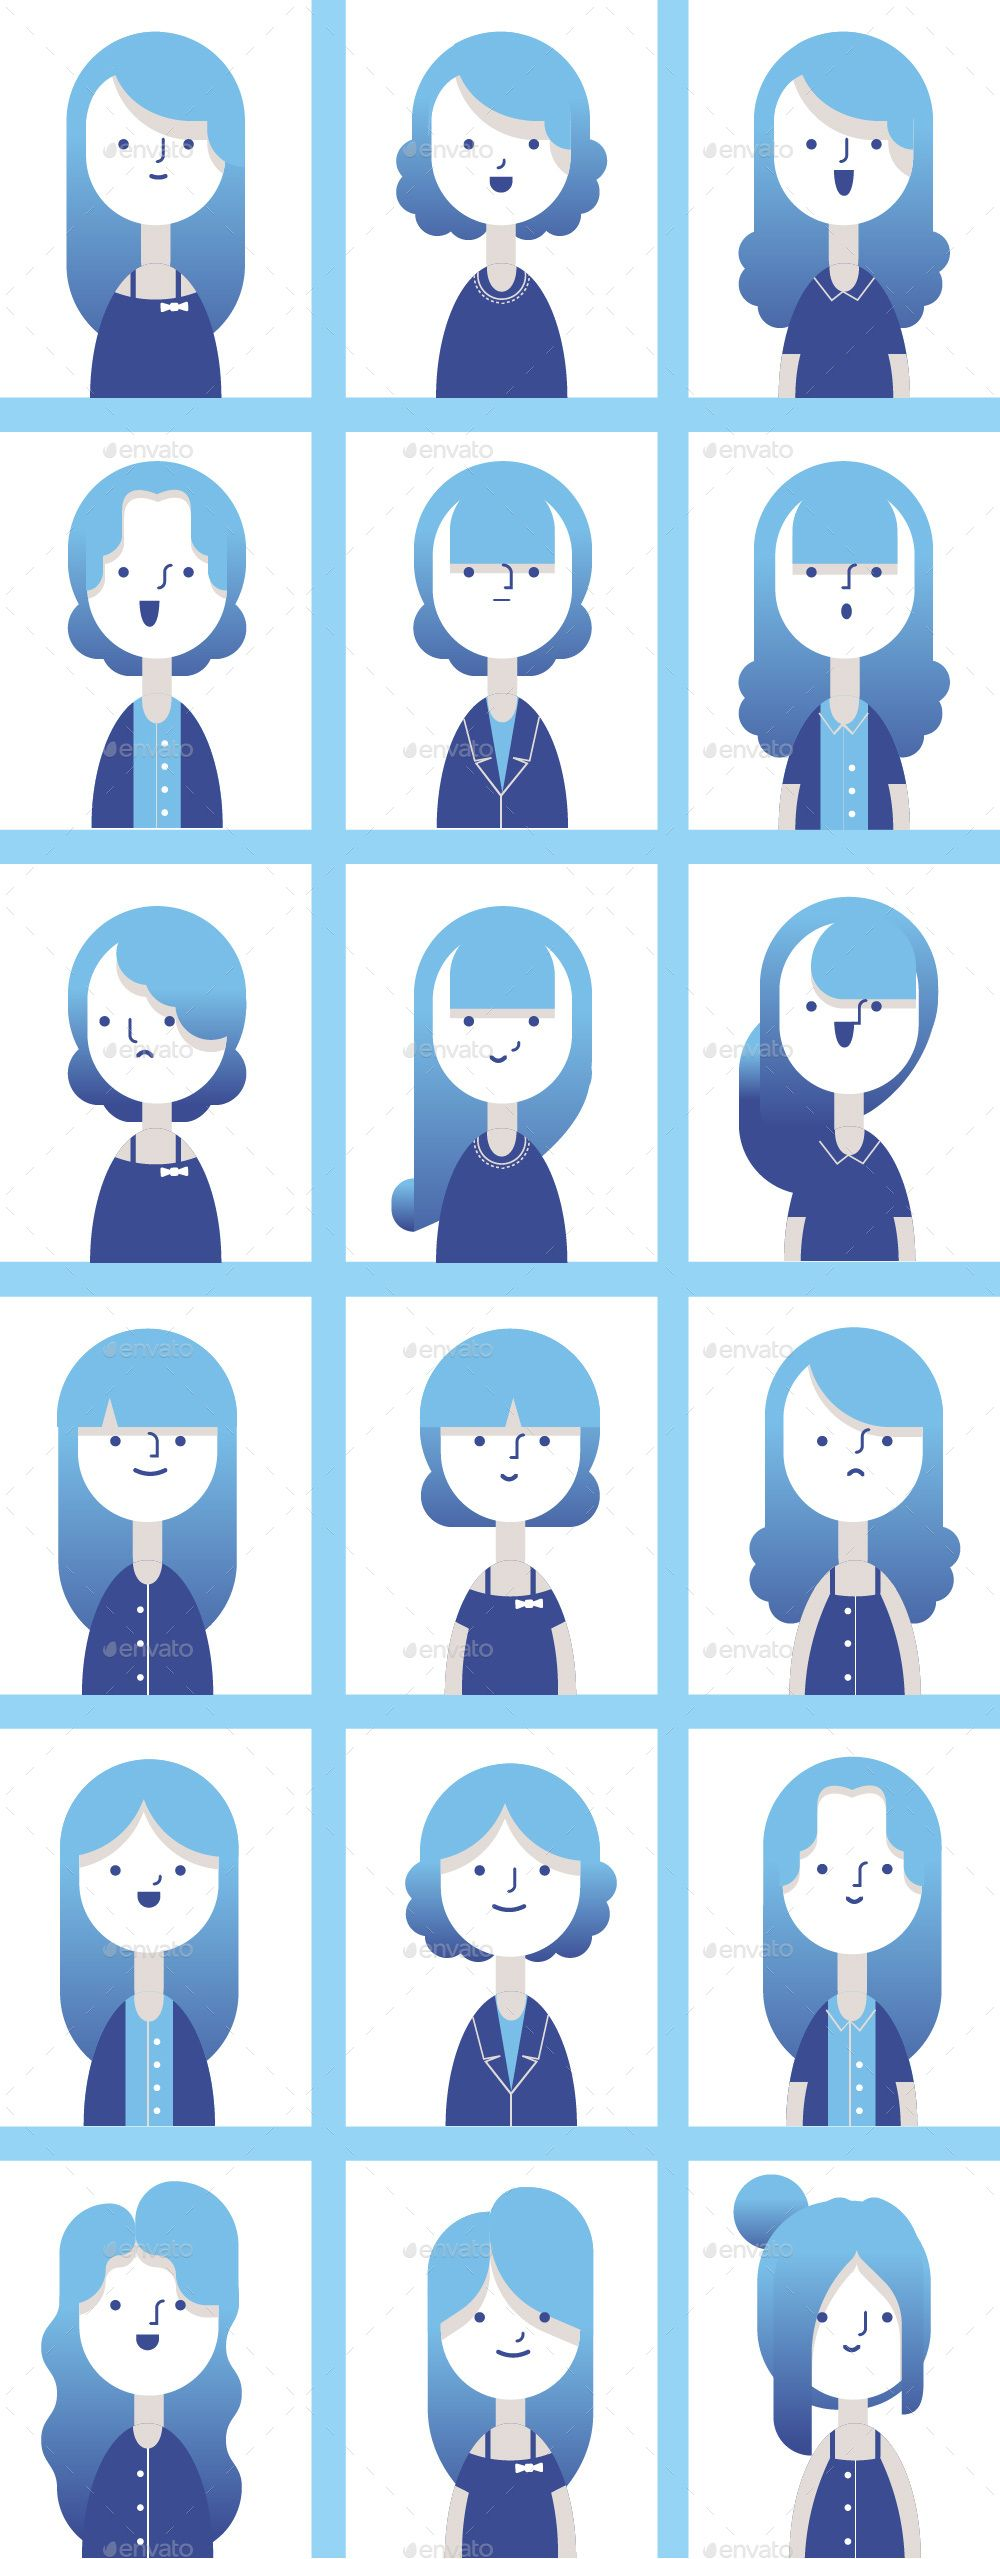 Set of Flat style female characters with gradient color and